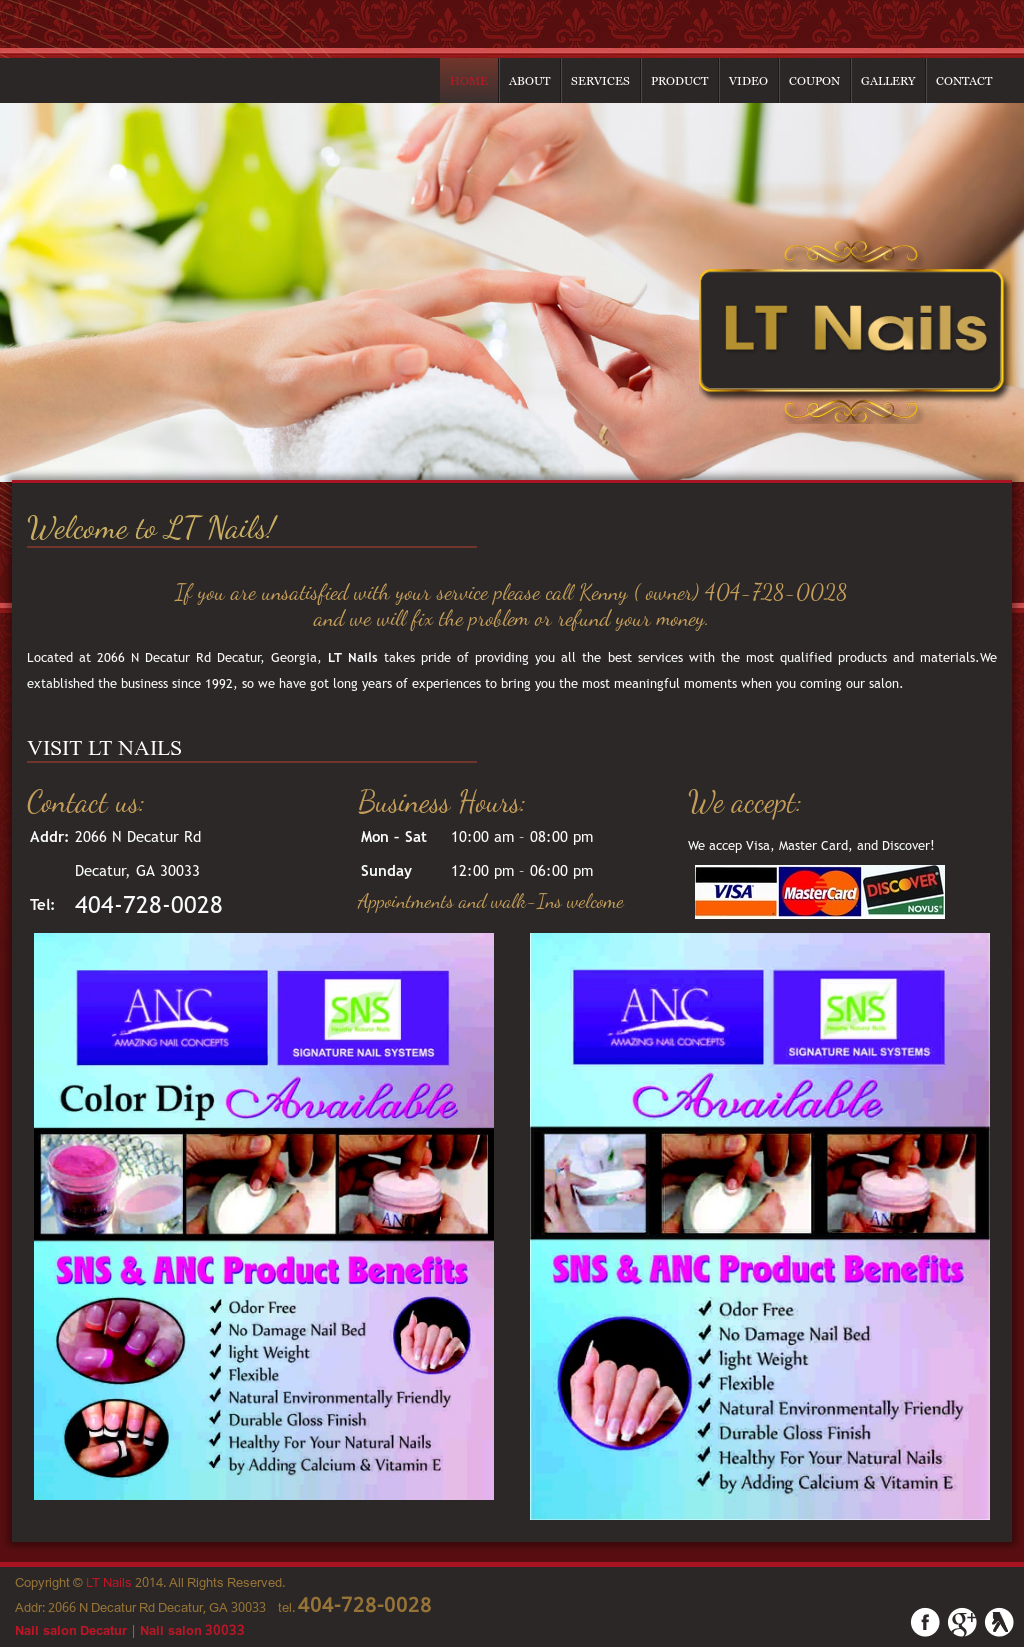 L T Nails Competitors, Revenue and Employees - Owler Company Profile